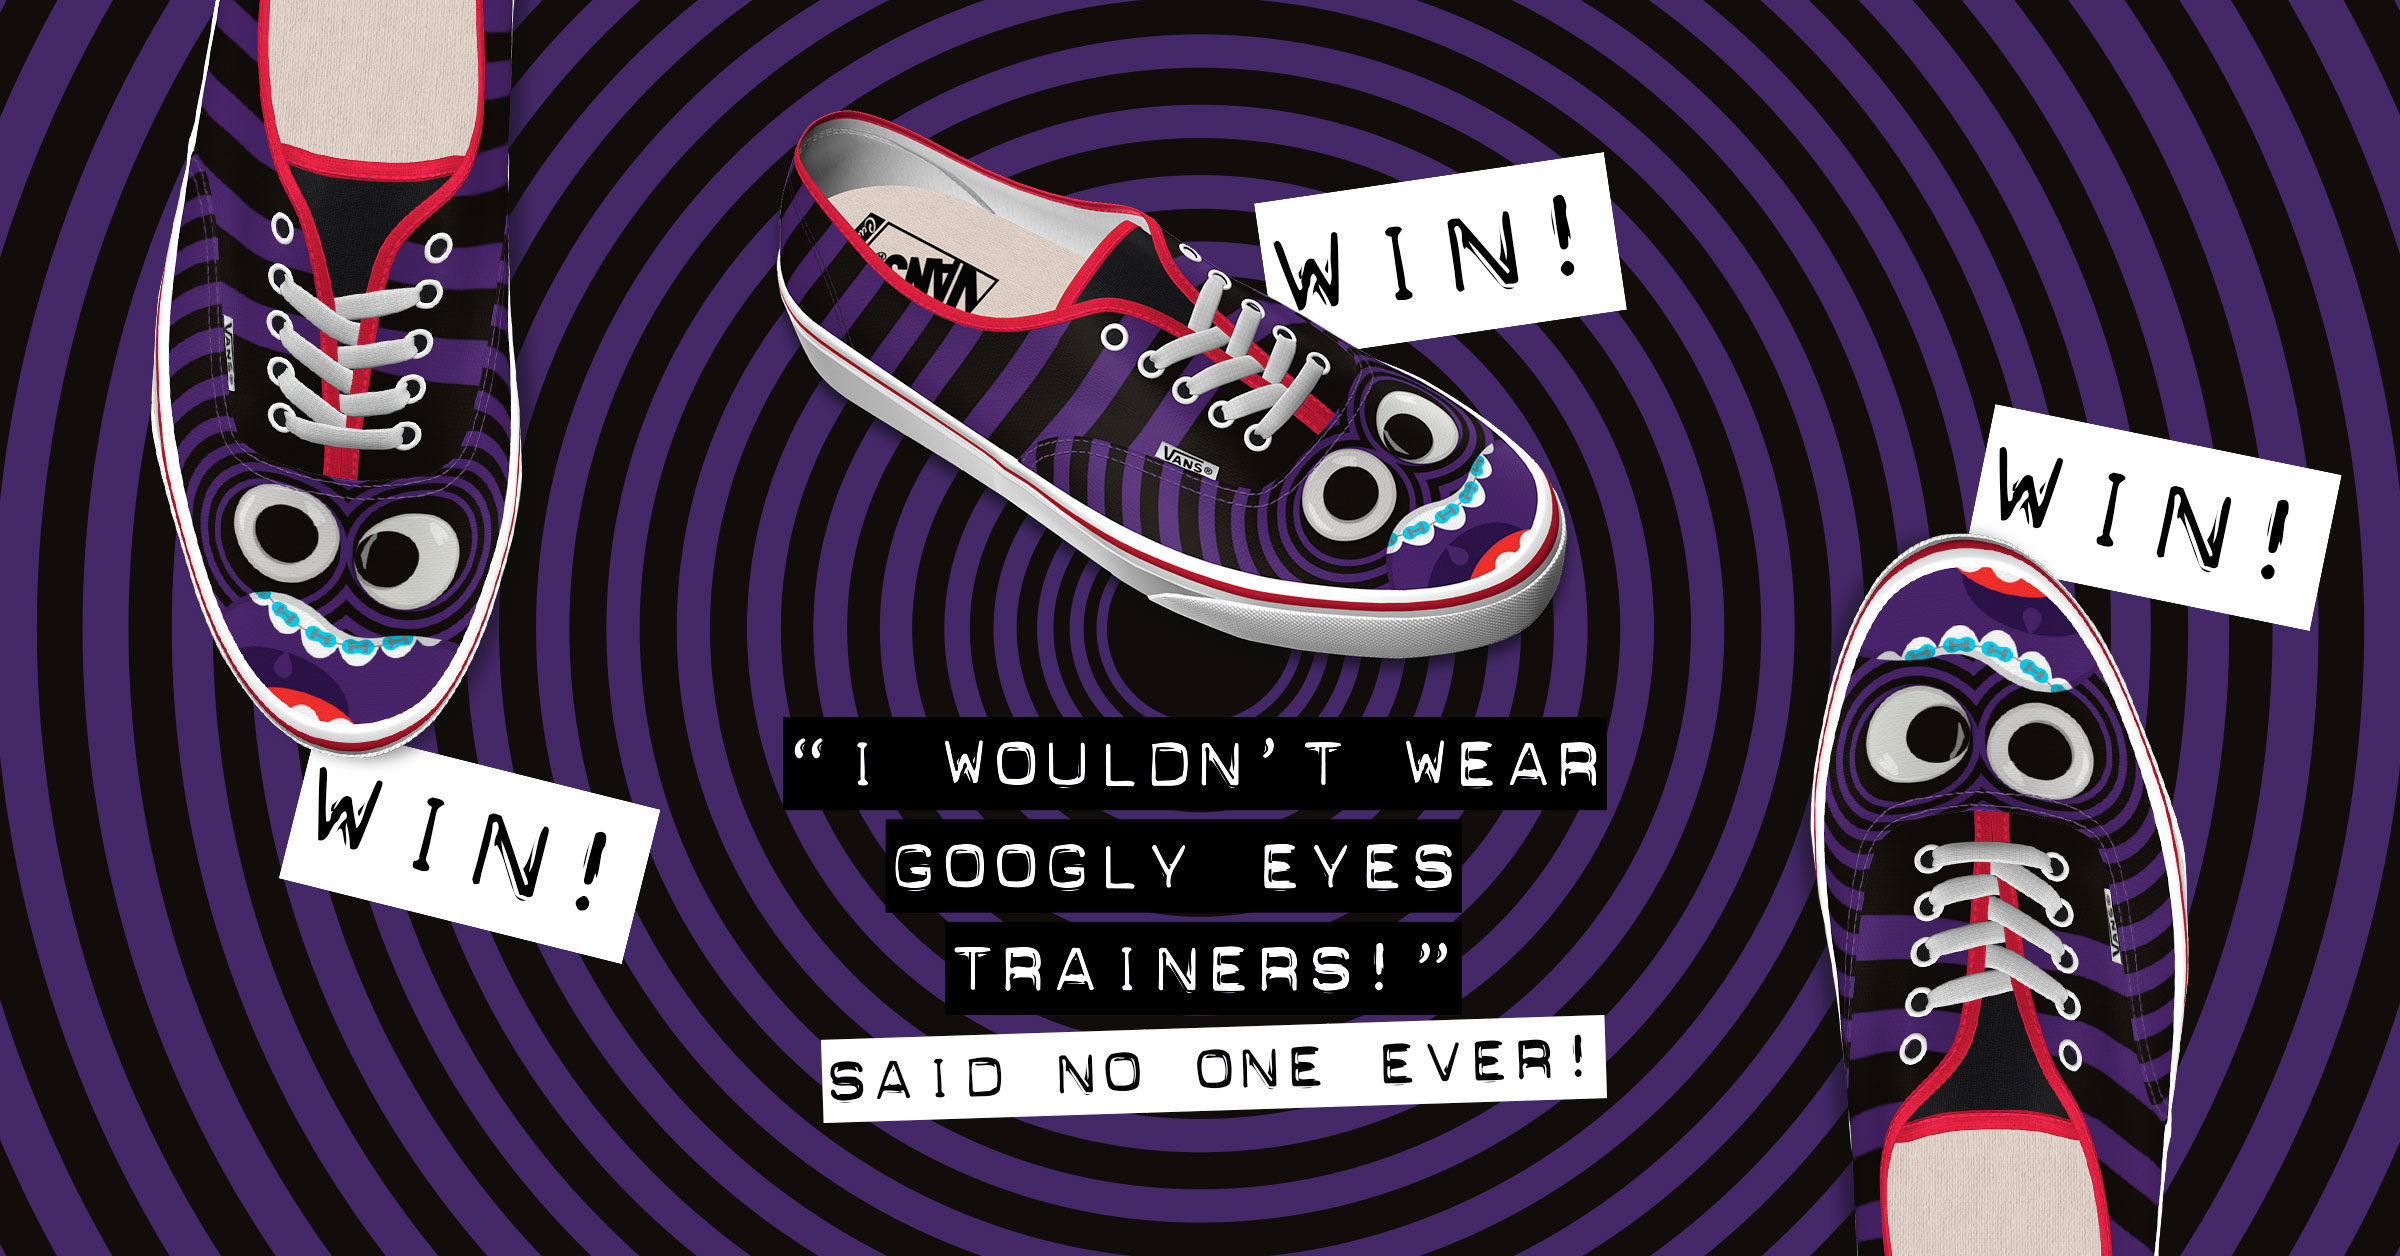 Win Googly Eyes Vans!